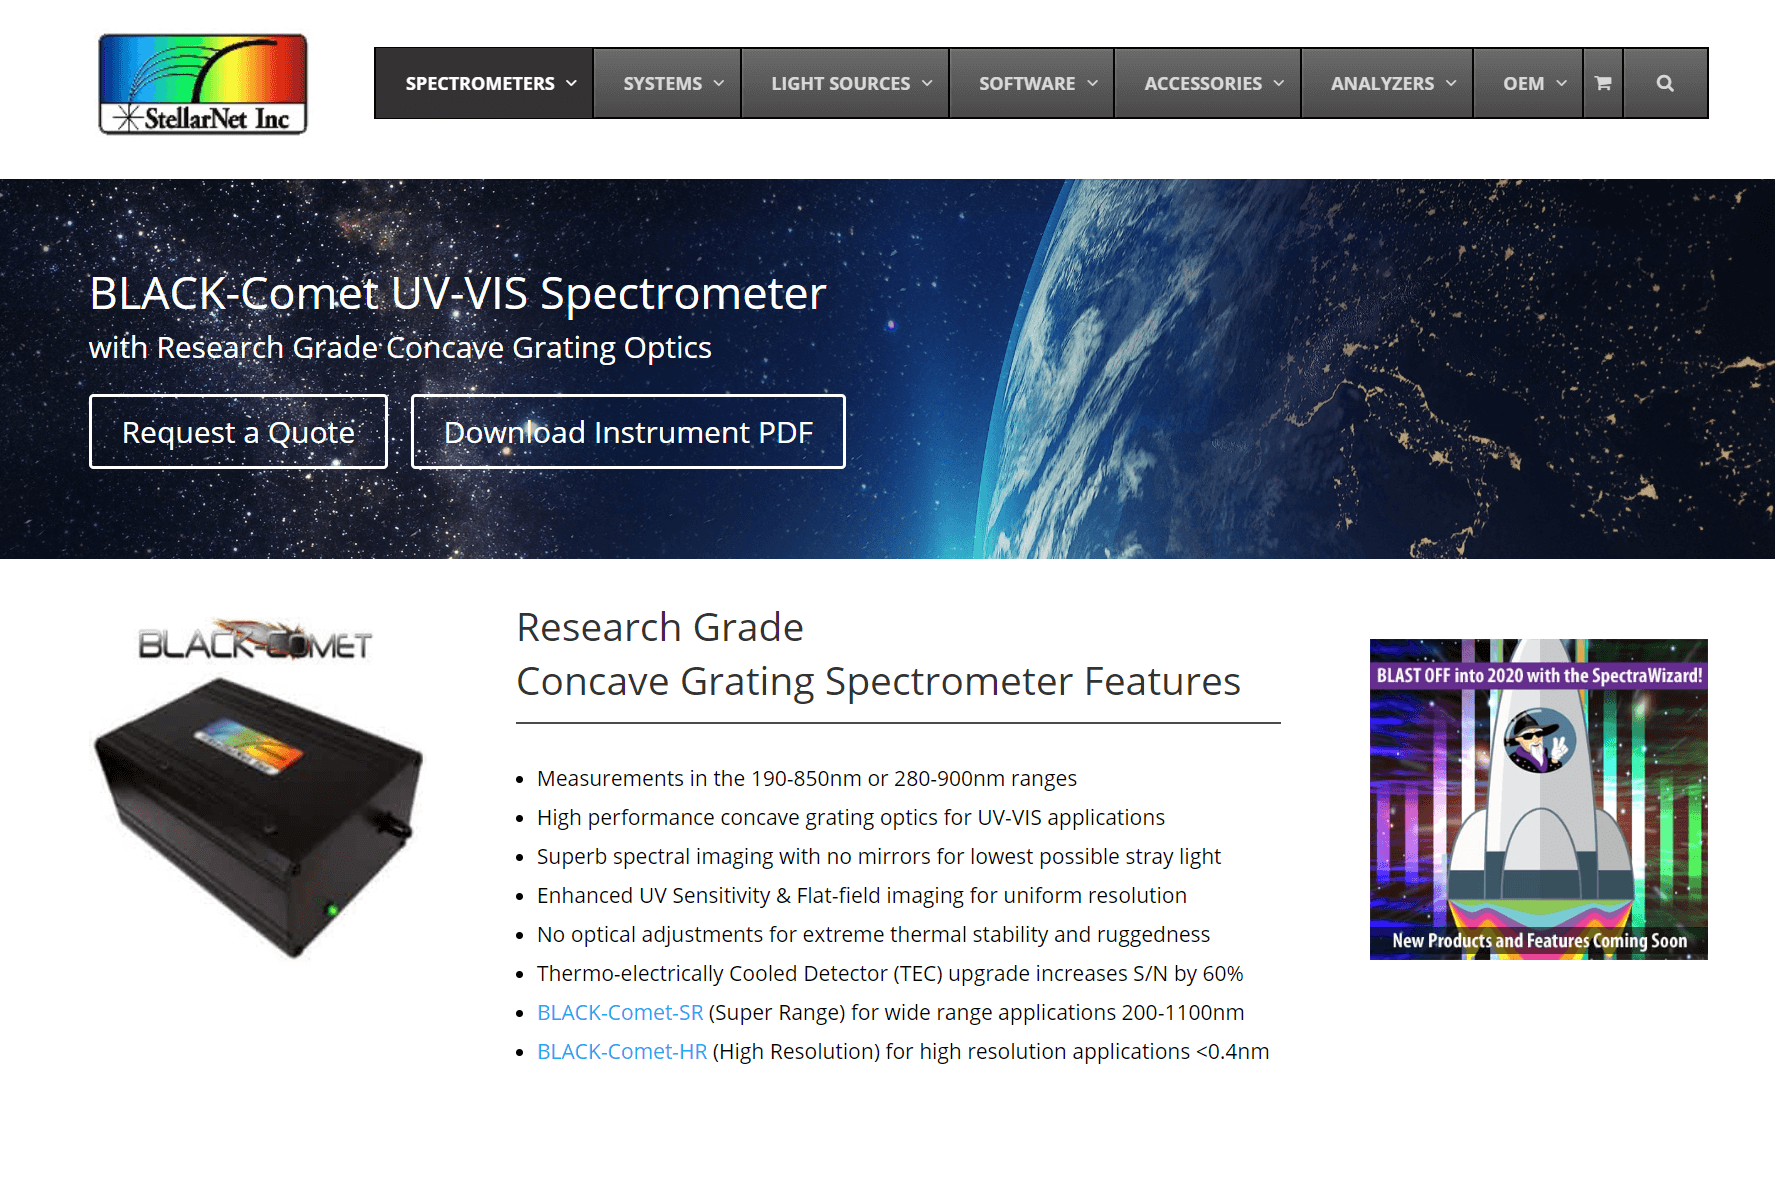 Black-Comet UV-VIS Spectrometer